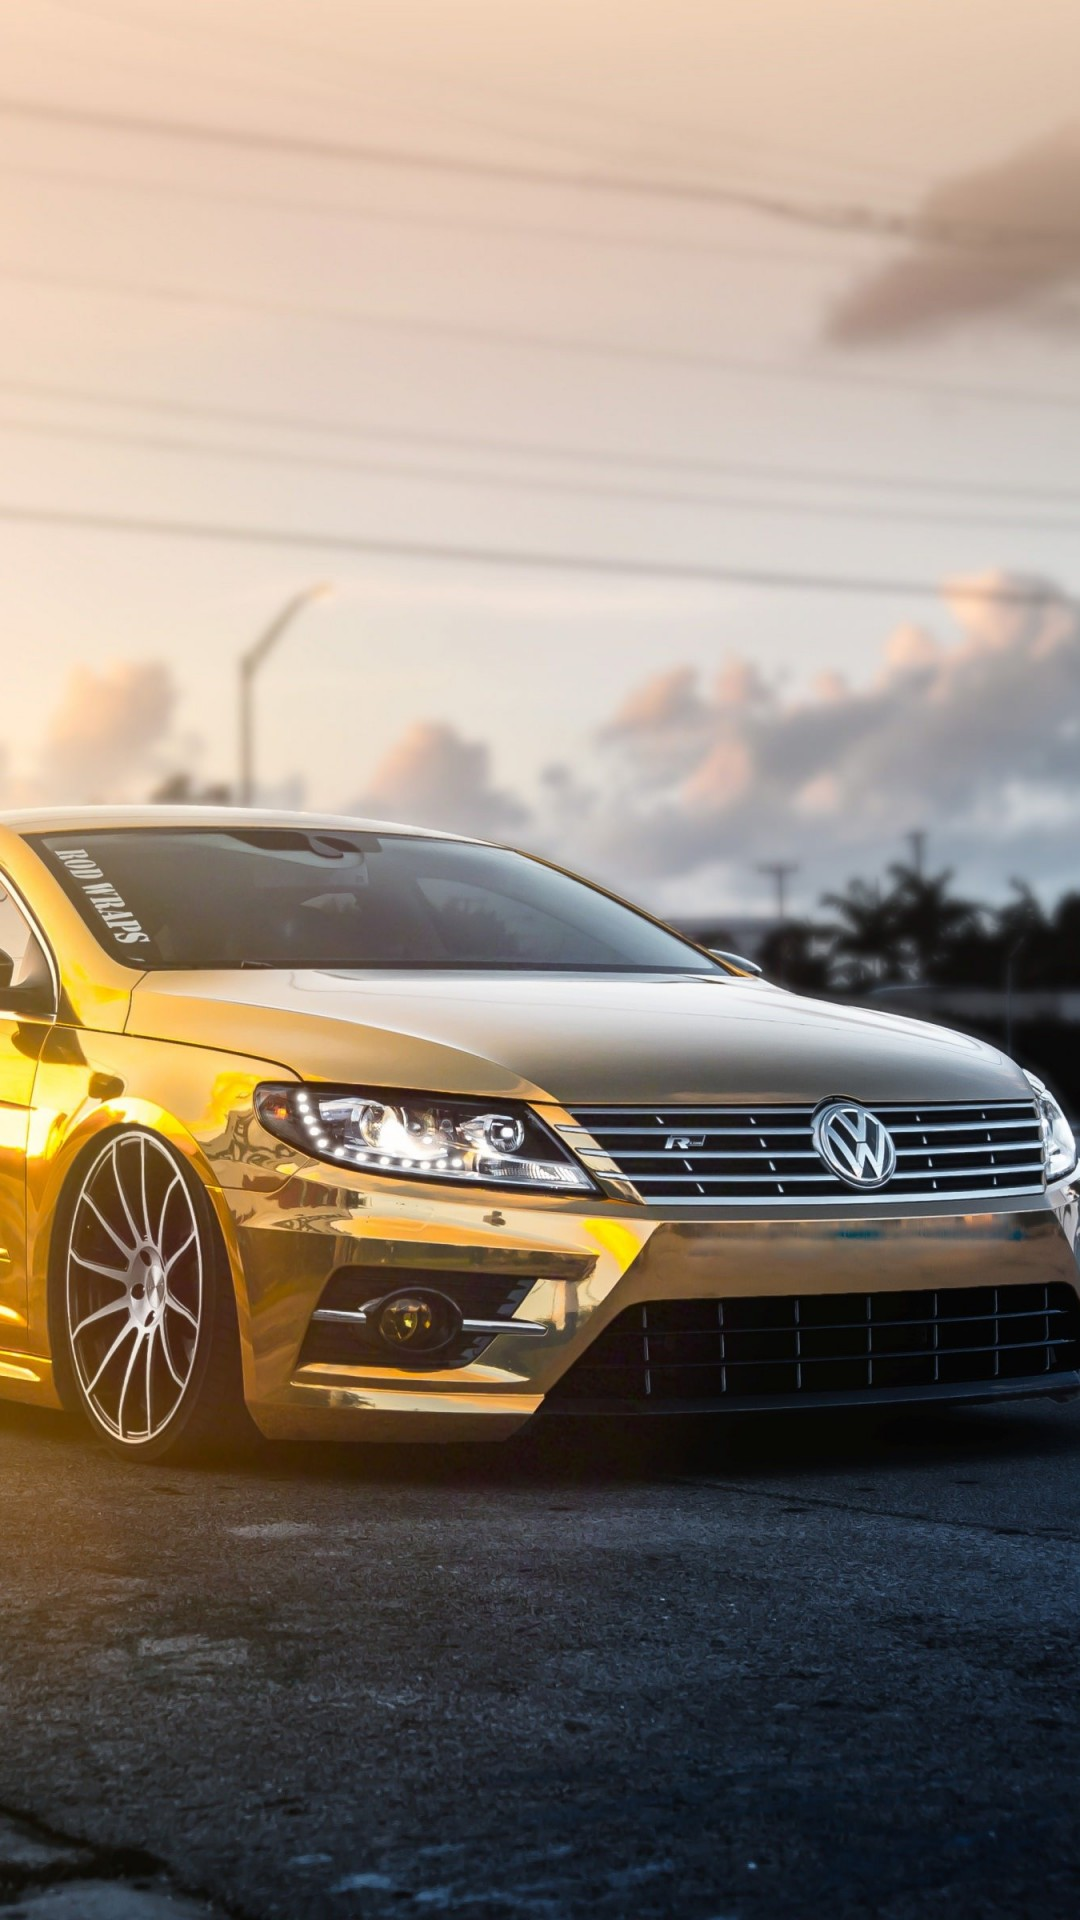 Golden Volkswagen Passat CC Wallpaper for SAMSUNG Galaxy S5